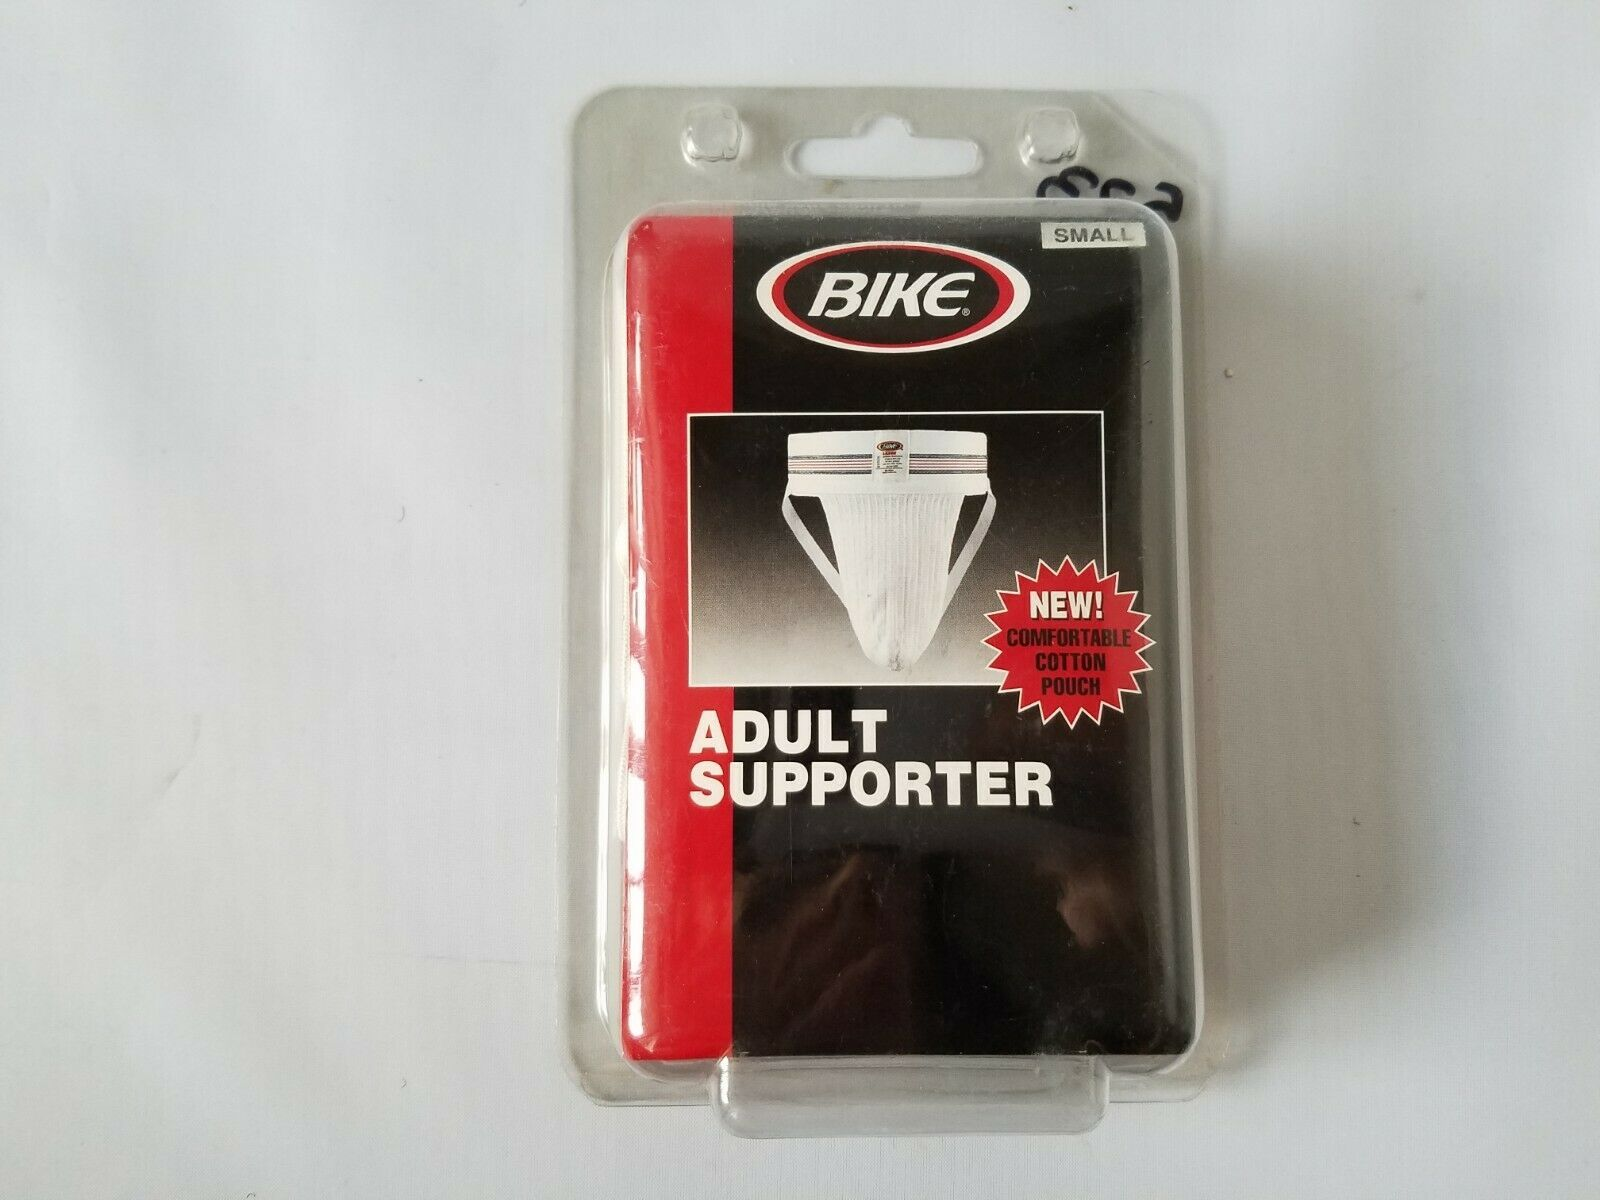 Adult Supporter Bike Athletic Company Vintage Comfortable Cotton Pouch S